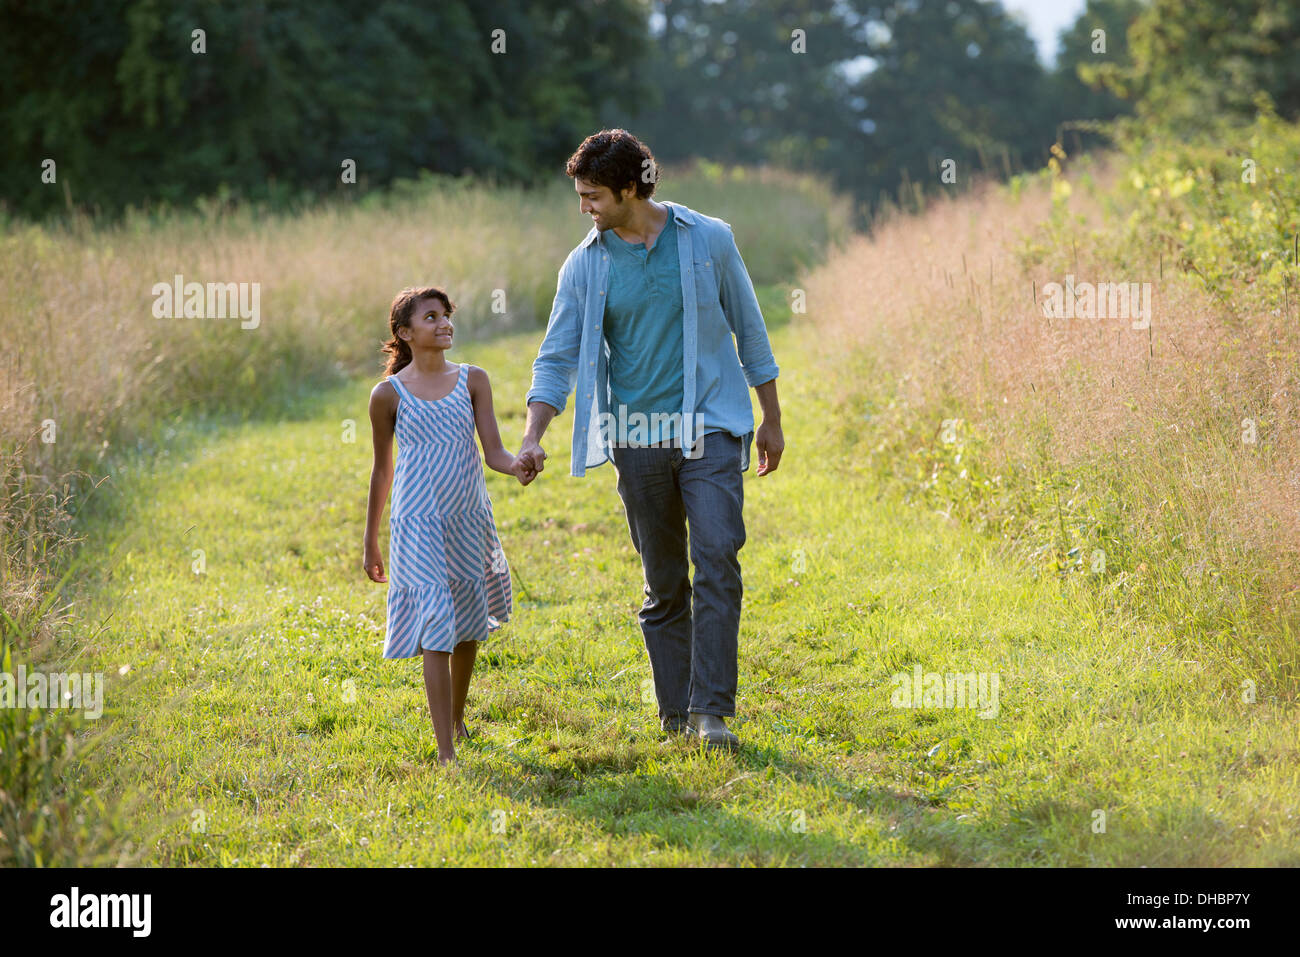 A man and a young girl walking down a mown path in the long grass holding hands. - Stock Image